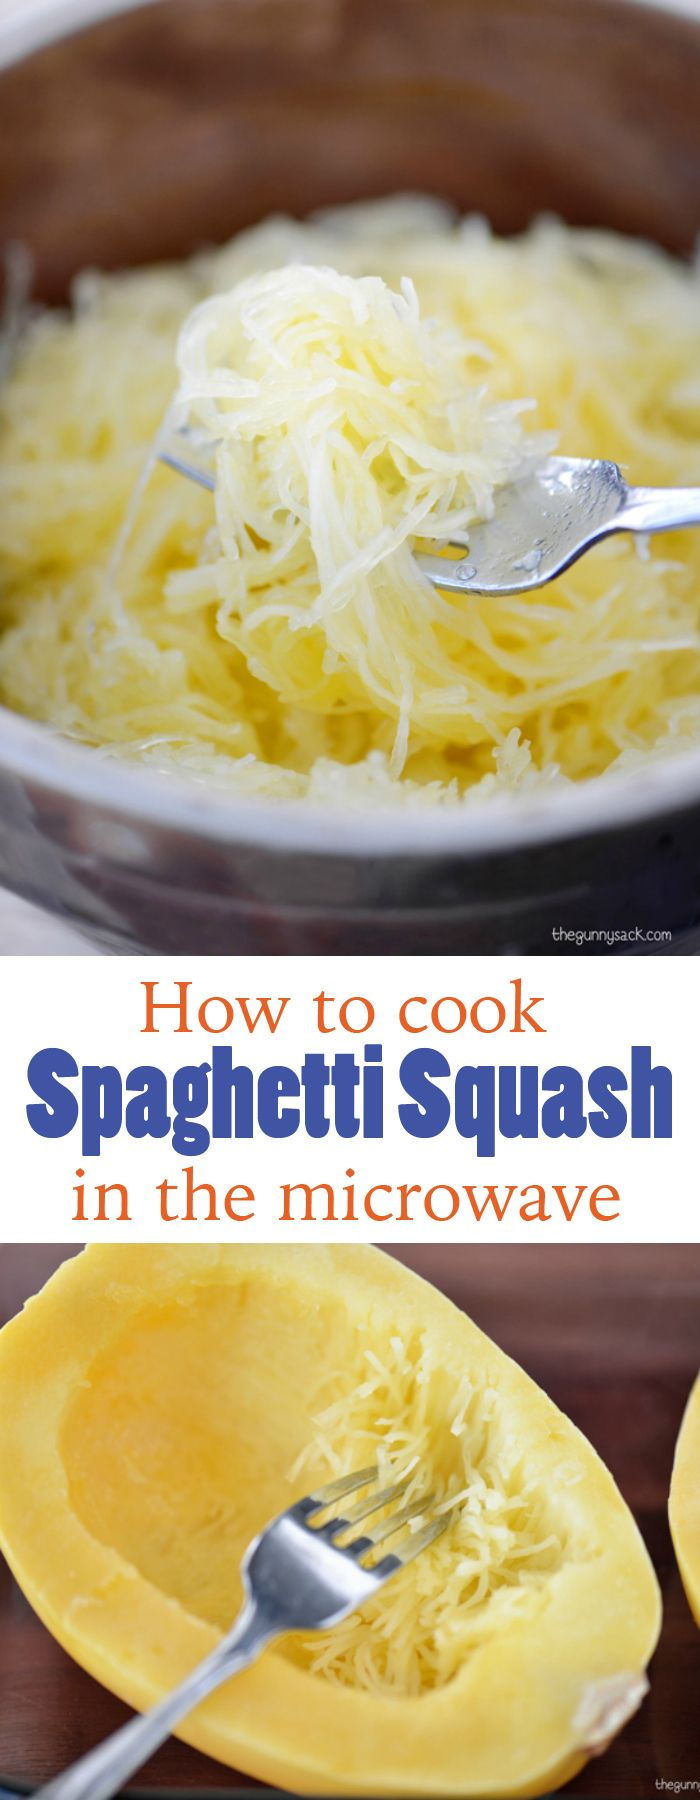 Learn how easy it is to cook spaghetti squash in the microwave!